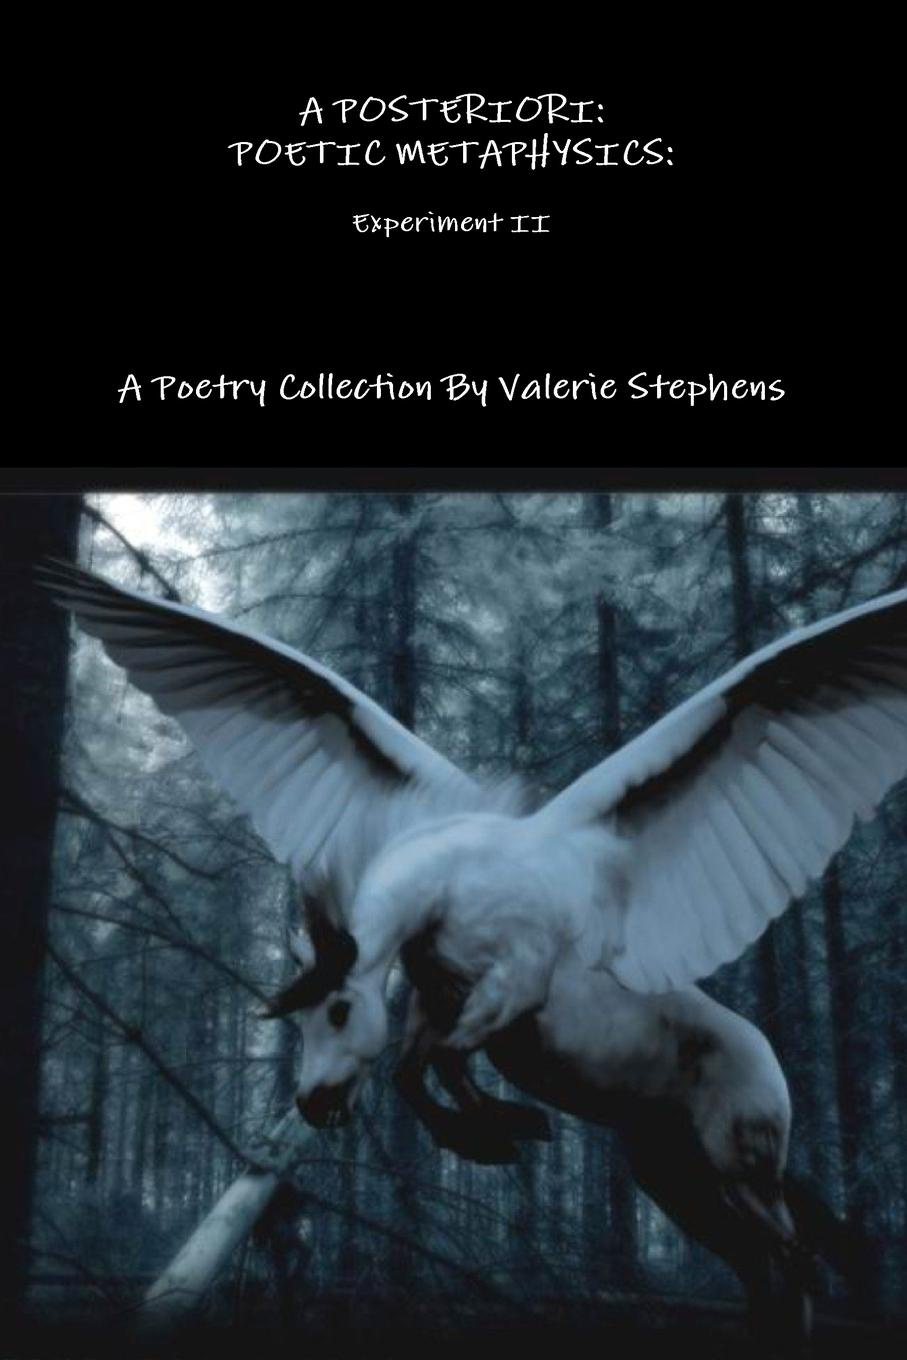 Valerie Stephens A POSTERIORI. AN EXPERIMENT IN POETIC METAPHYSICS II timothy pickavance the atlas of reality a comprehensive guide to metaphysics